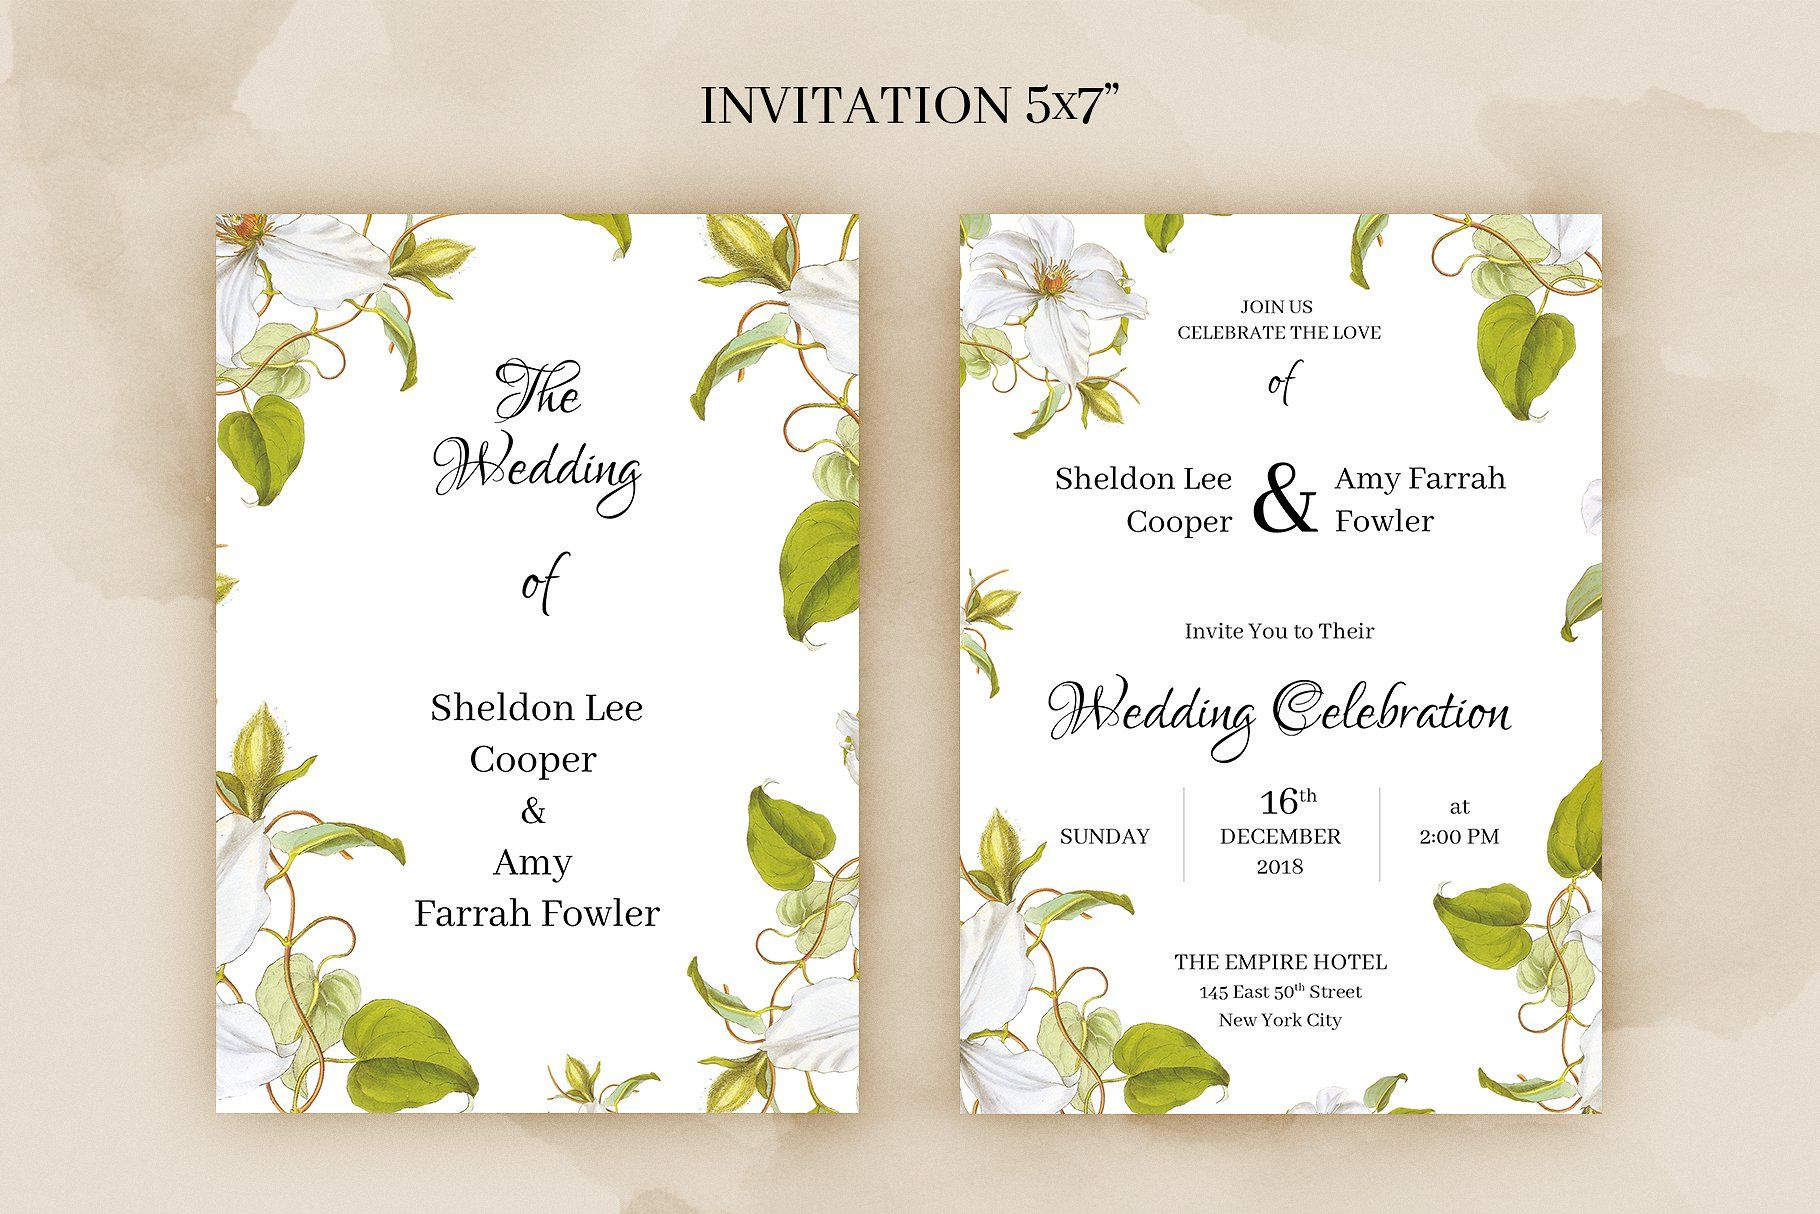 clematis wedding invitation clematis place card and table numbers